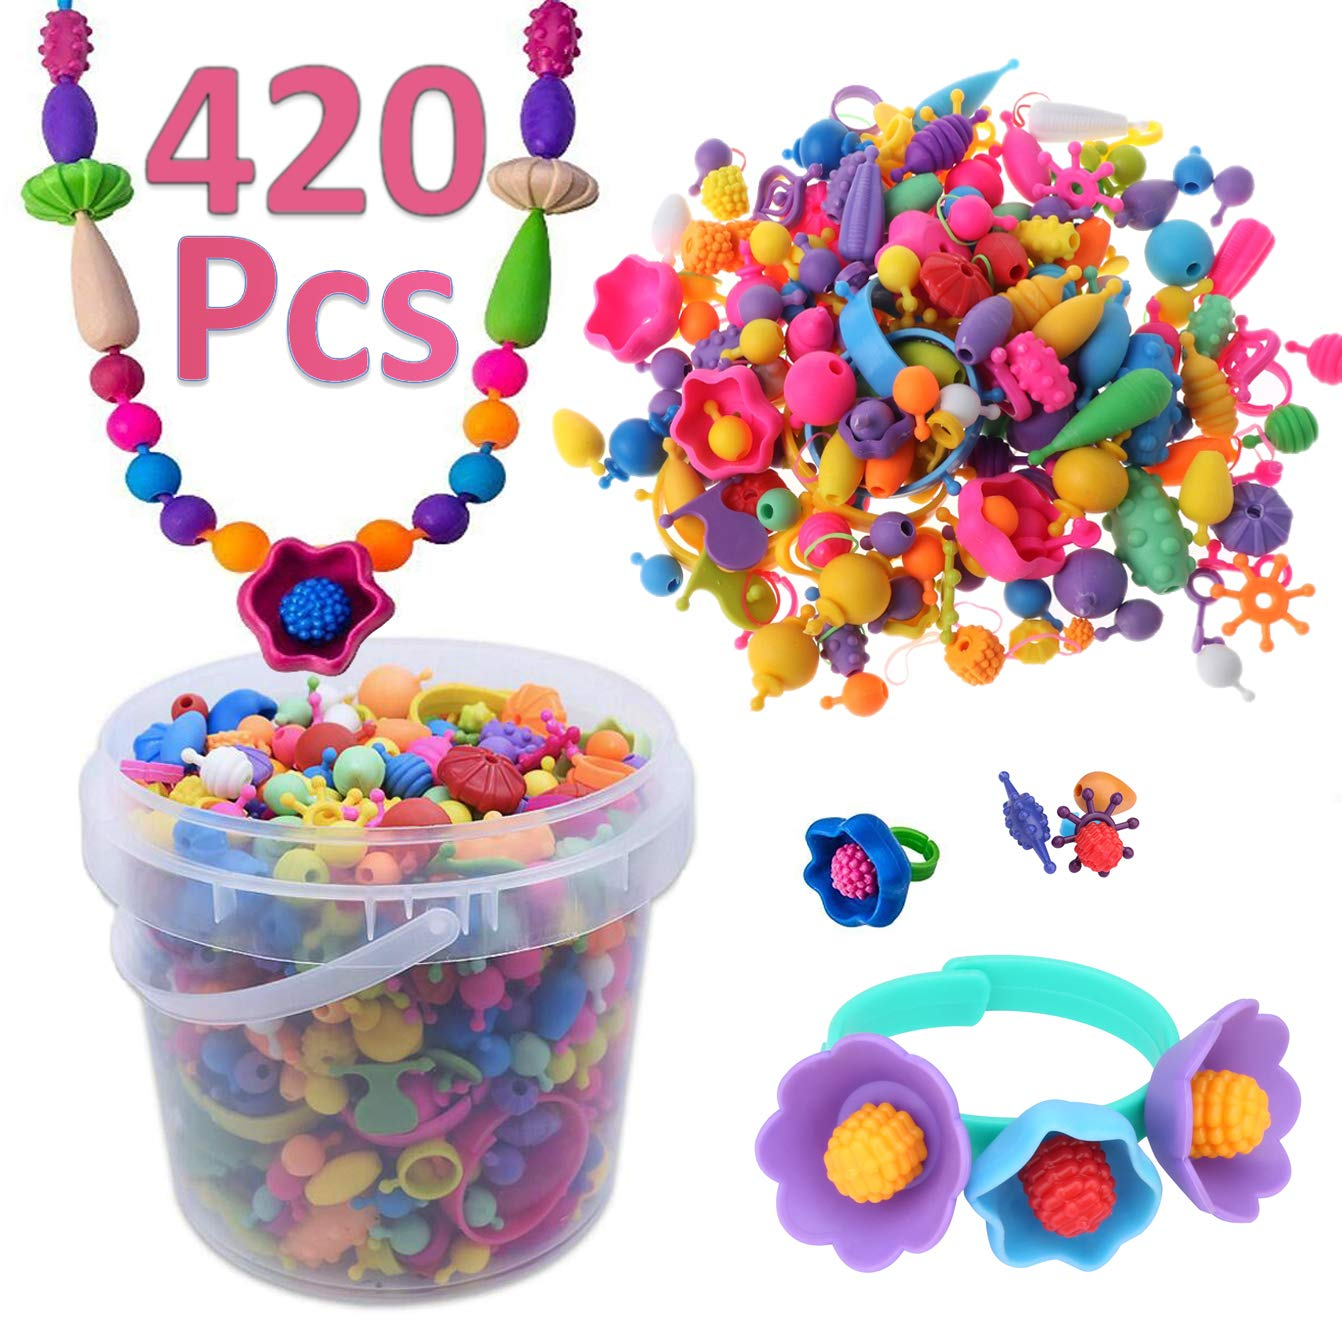 DUUTY Pop Snap Beads Set Arty Toy Bead Creativity DIY Jewelry Kit for Making Necklace Bracelet Rings Arts Crafts Toys Christmas Birthday Gifts for Kids Girls 420 Pcs